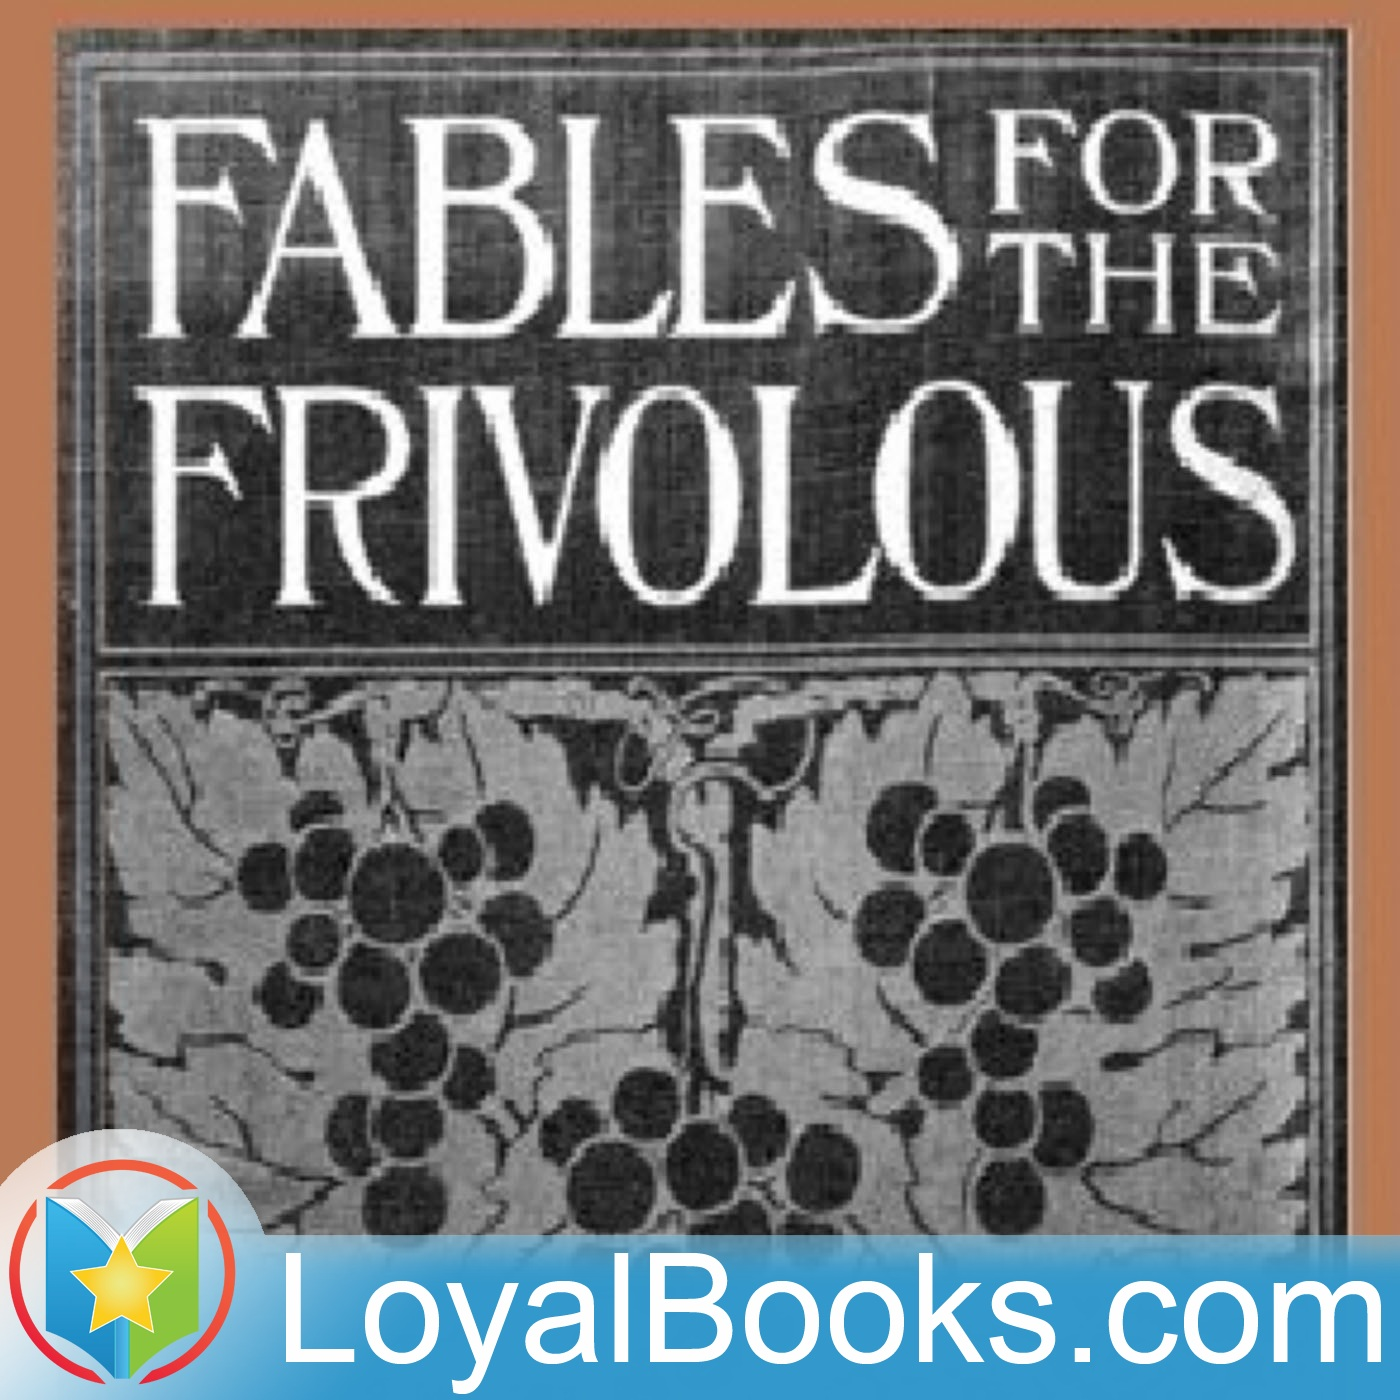 <![CDATA[Fables for the Frivolous by Guy Wetmore Carryl]]>